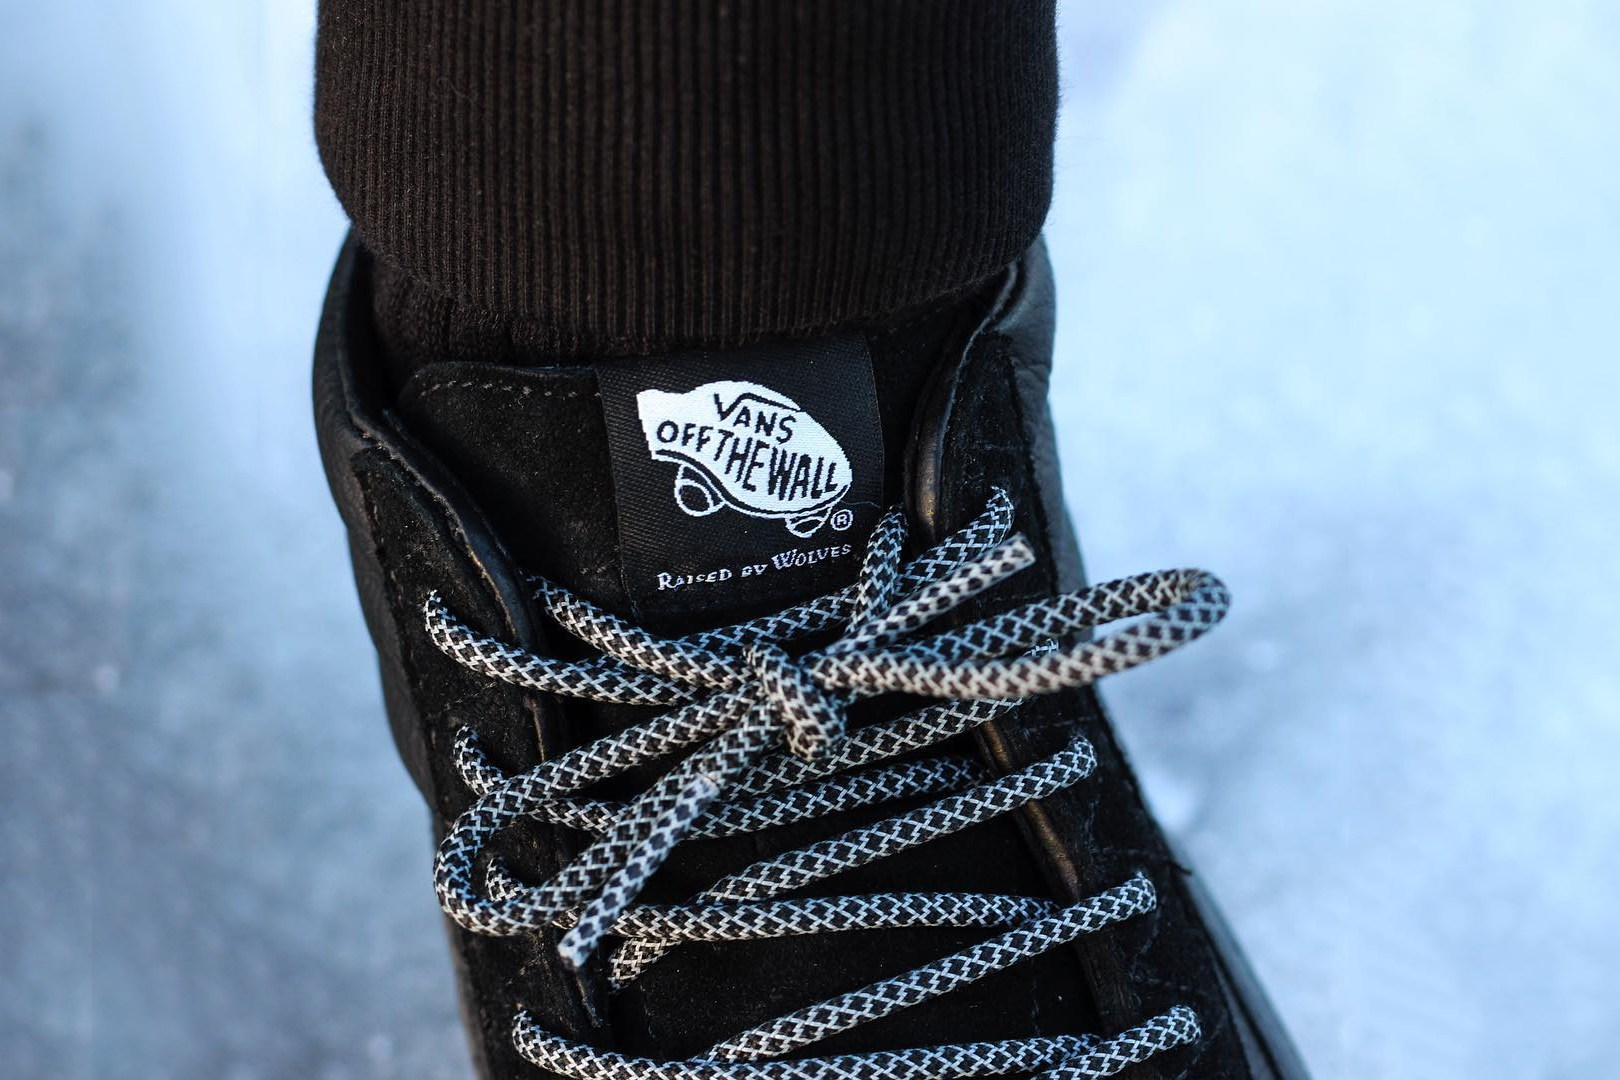 15f2dbdfed First Look at Raised by Wolves x Off The Hook x Vans Collaboration